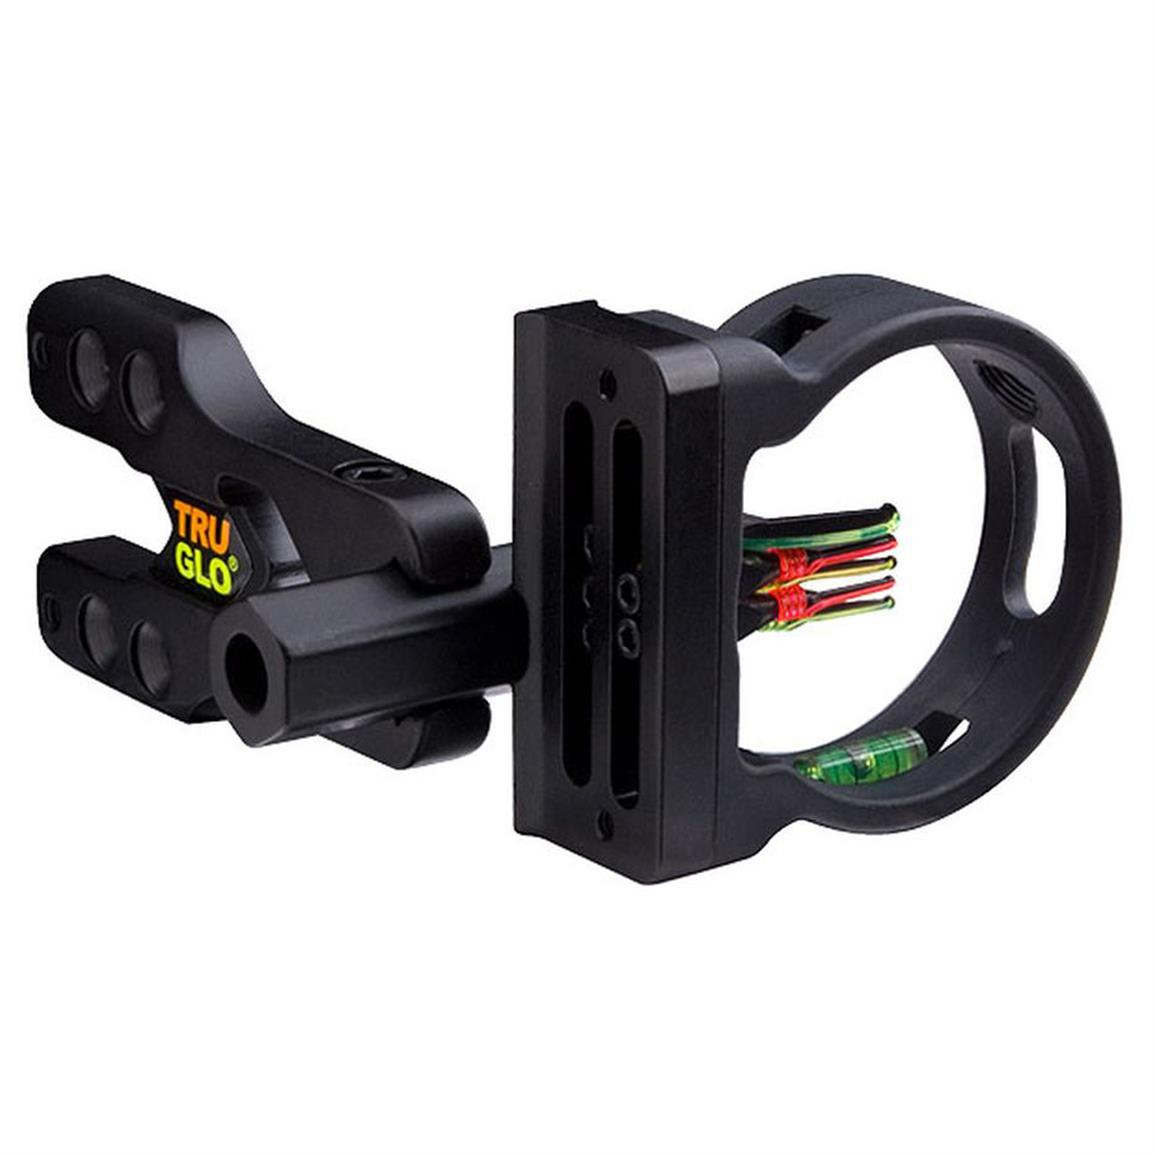 Truglo Brite-Site Xtreme Series 5-Pin Sight with Green TFO (Tritium Fiber Optic) Pin